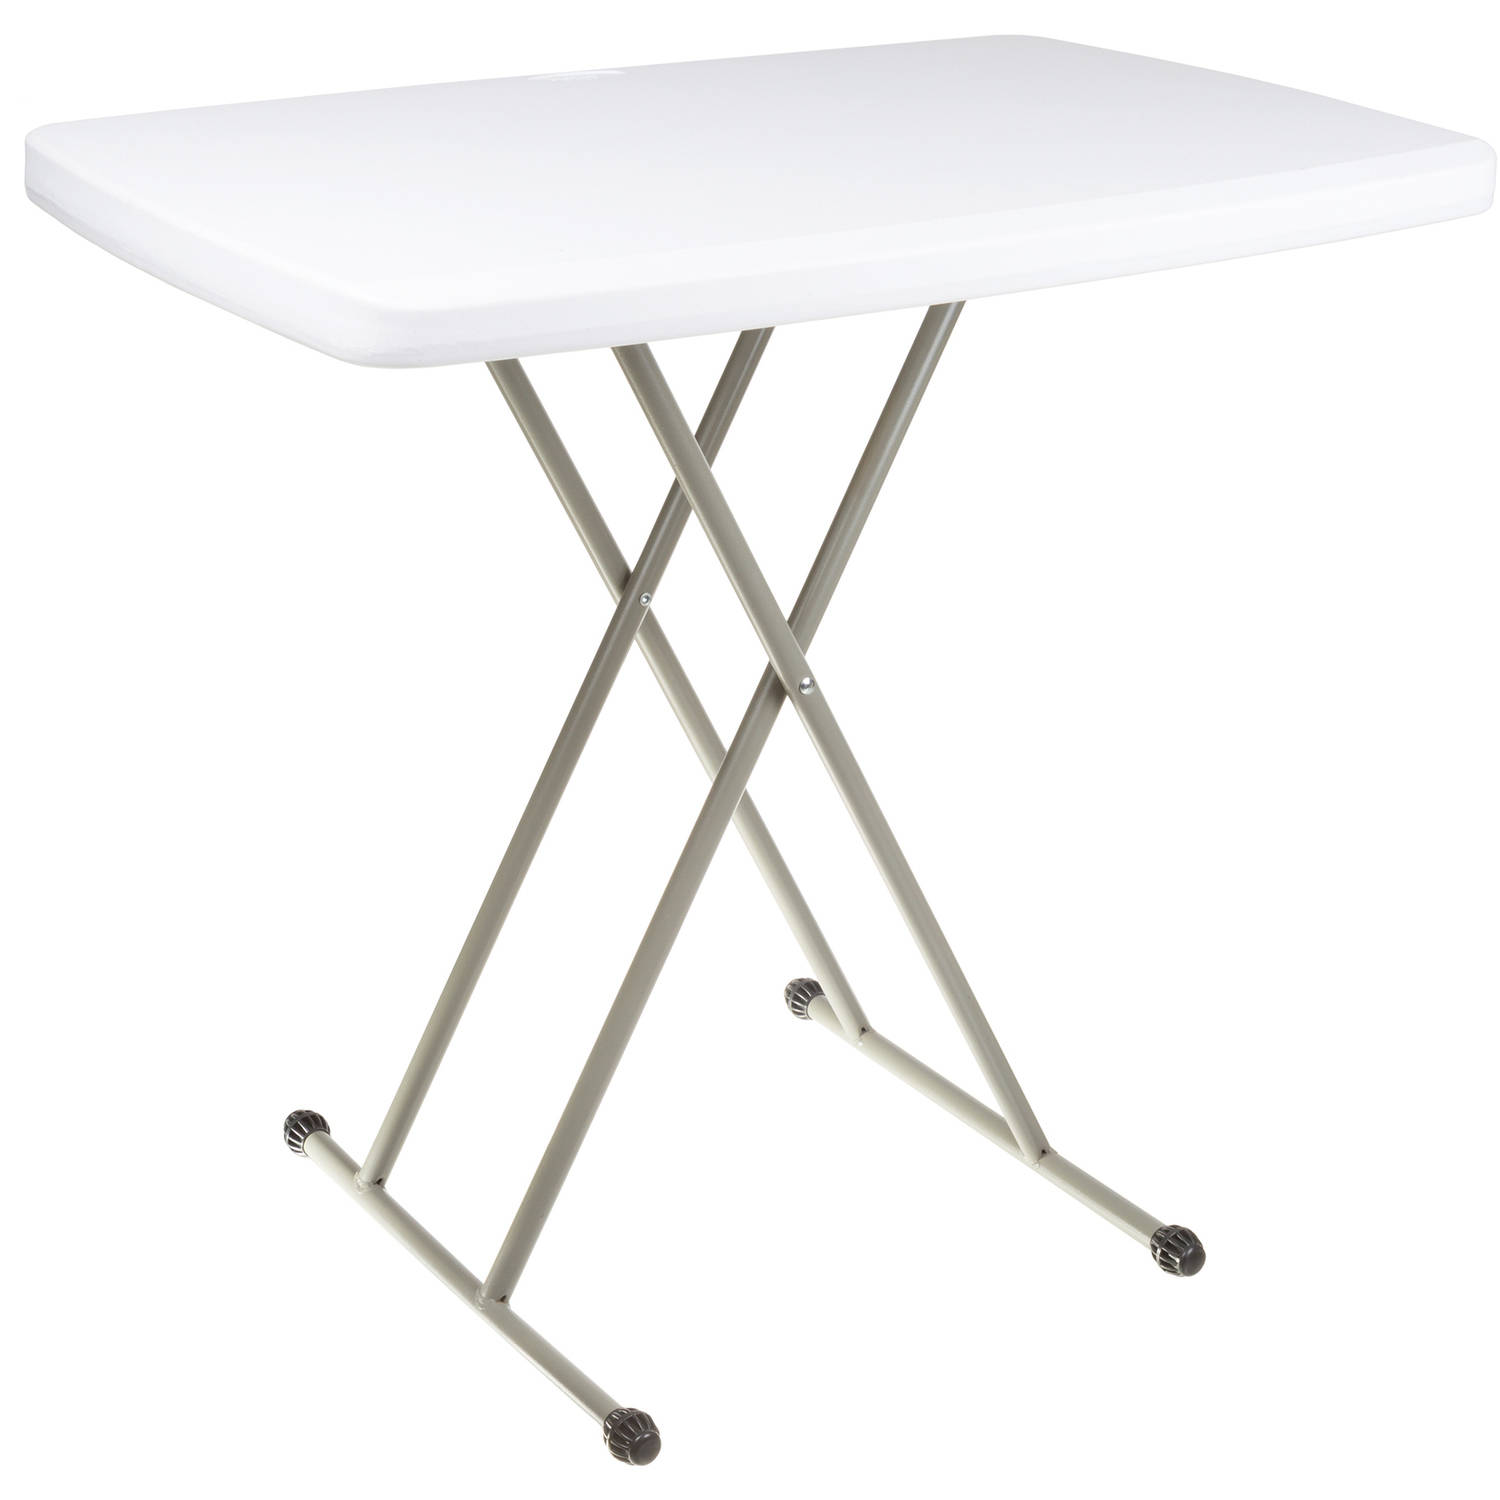 Marvelous Folding Table, Foldable Table And TV Tray By Everyday Home, 30 X 20 X